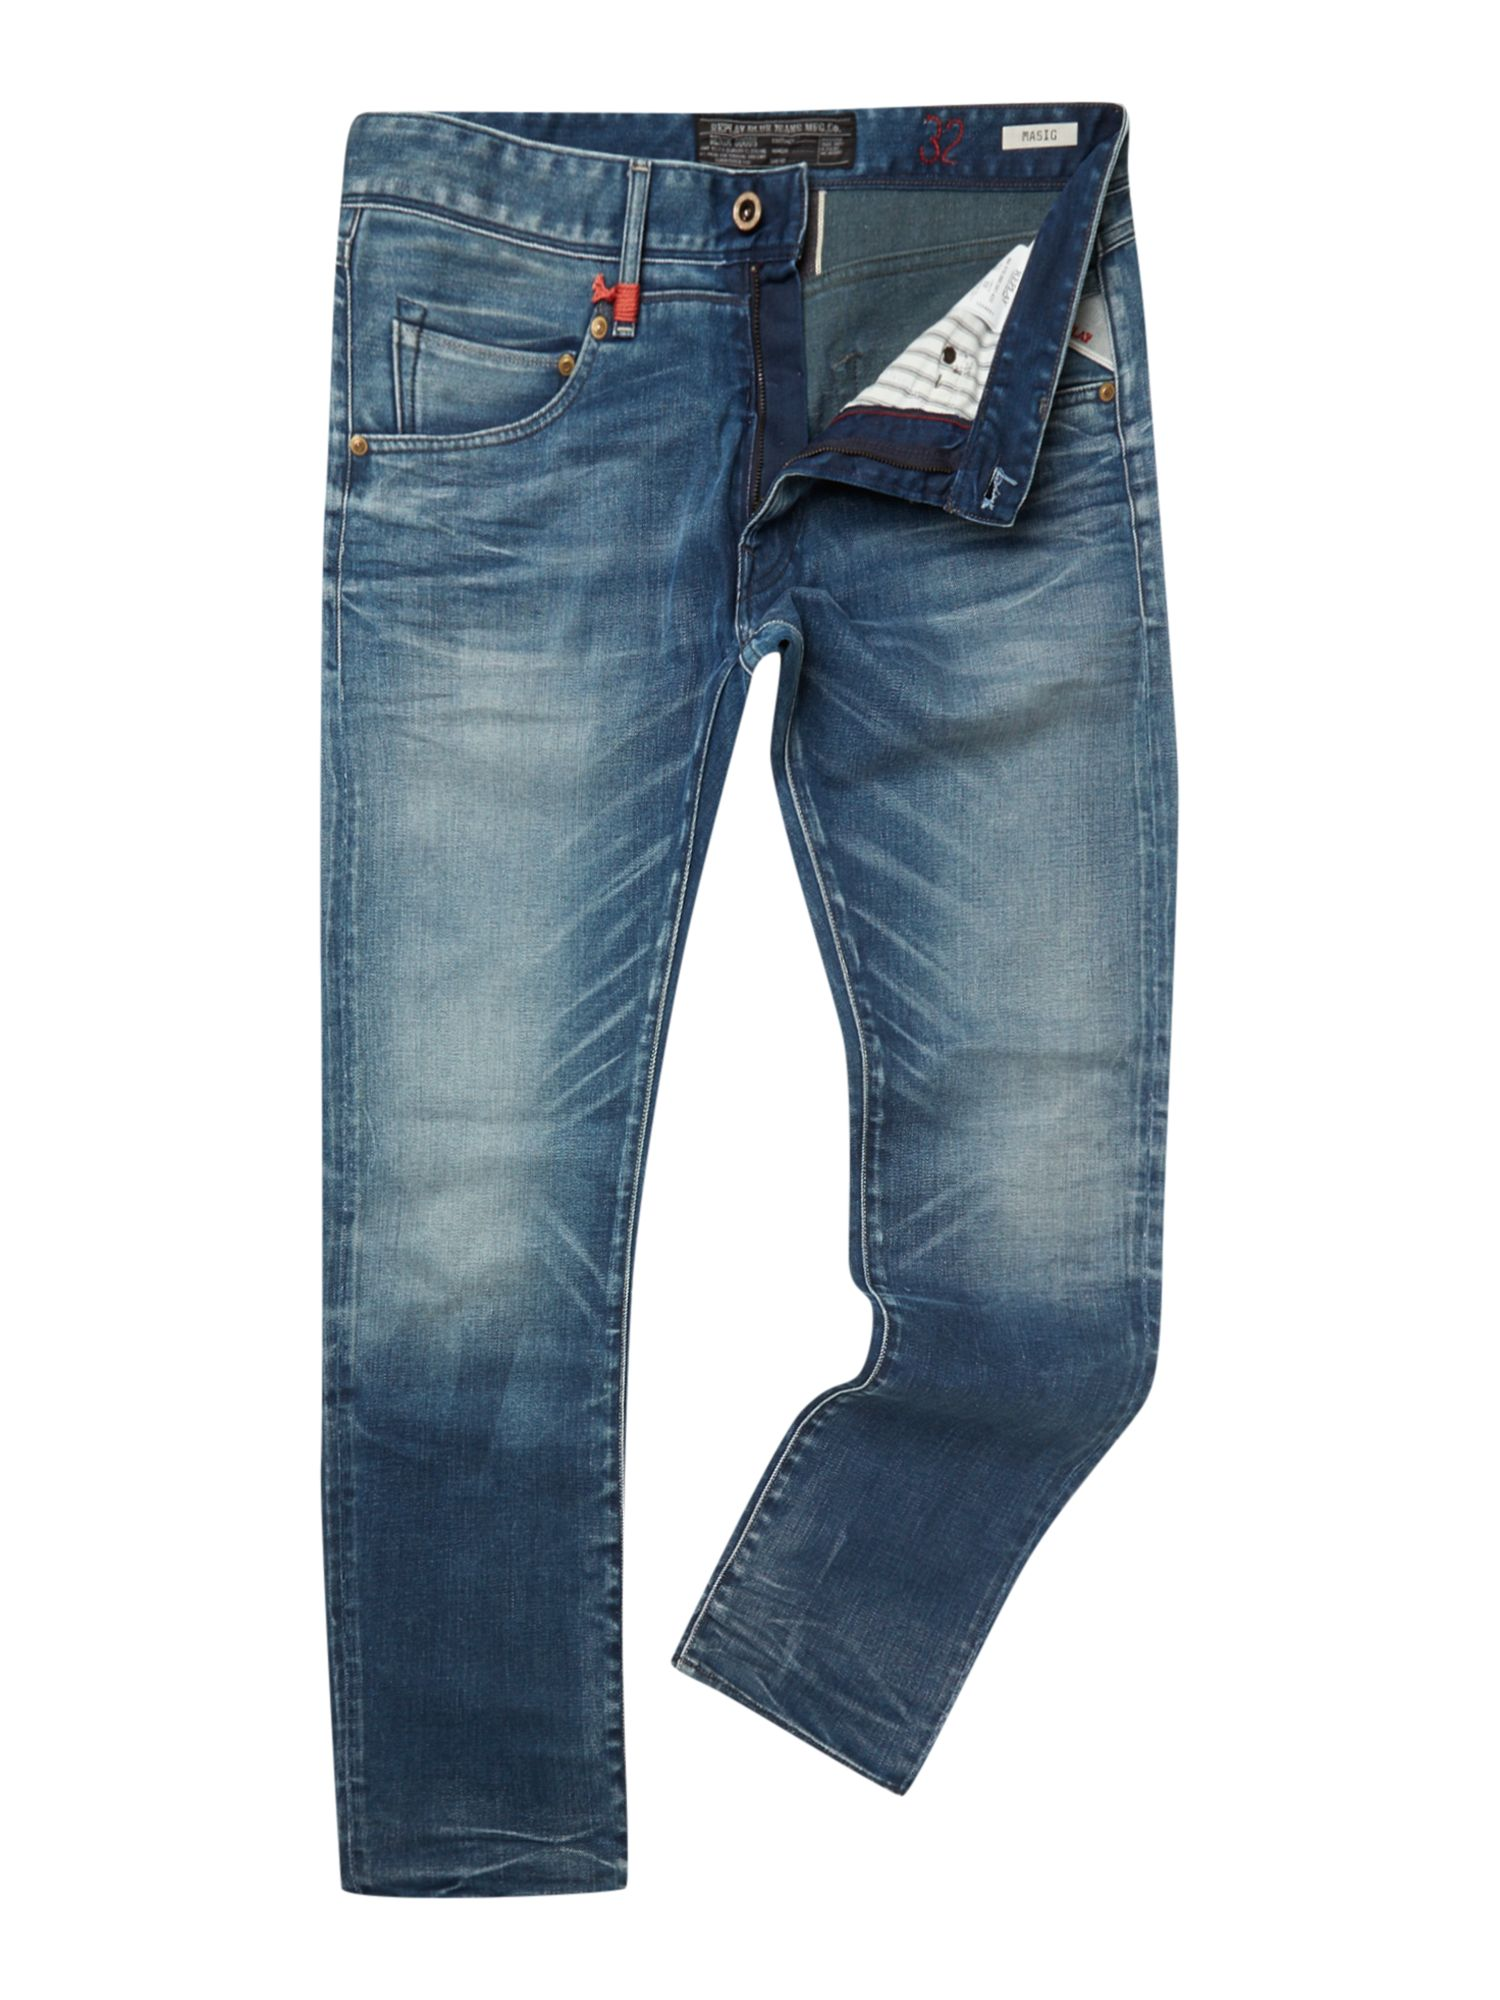 Masig tapered slim fit denim jeans